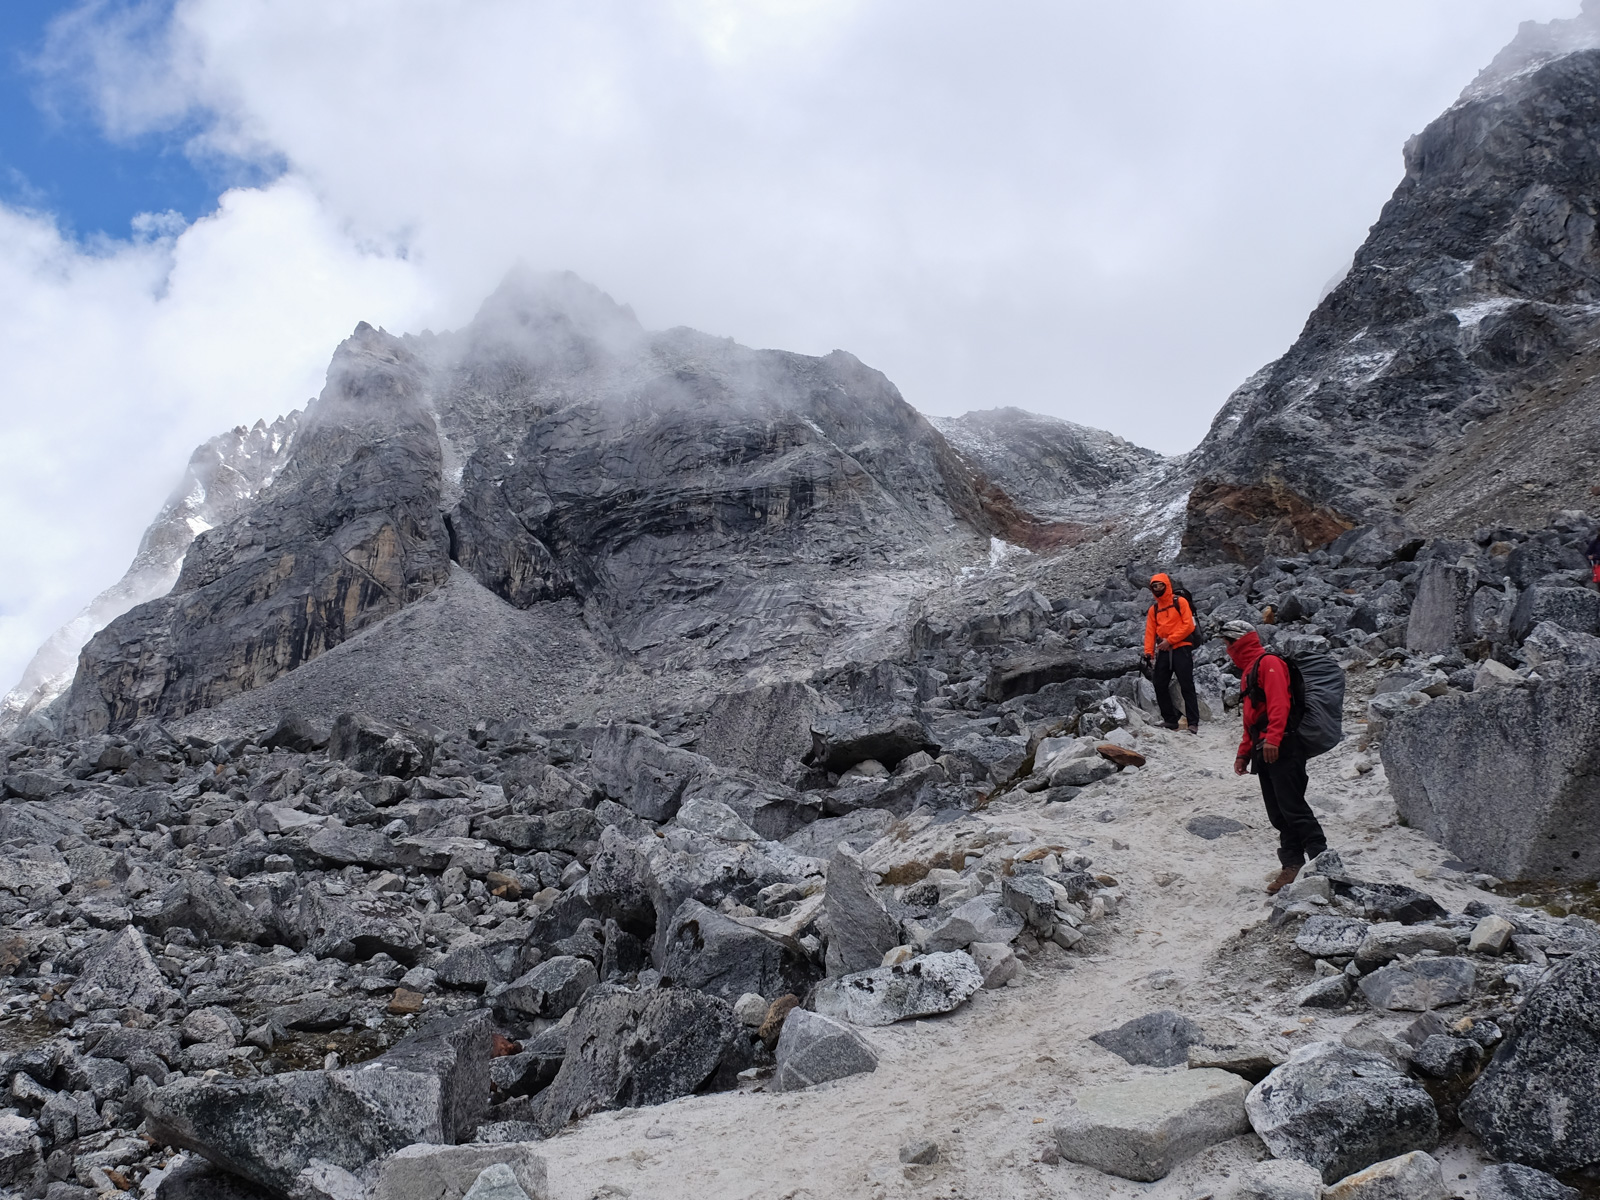 Kala Patthar & Gokyo, Everest 3 pass #3 58